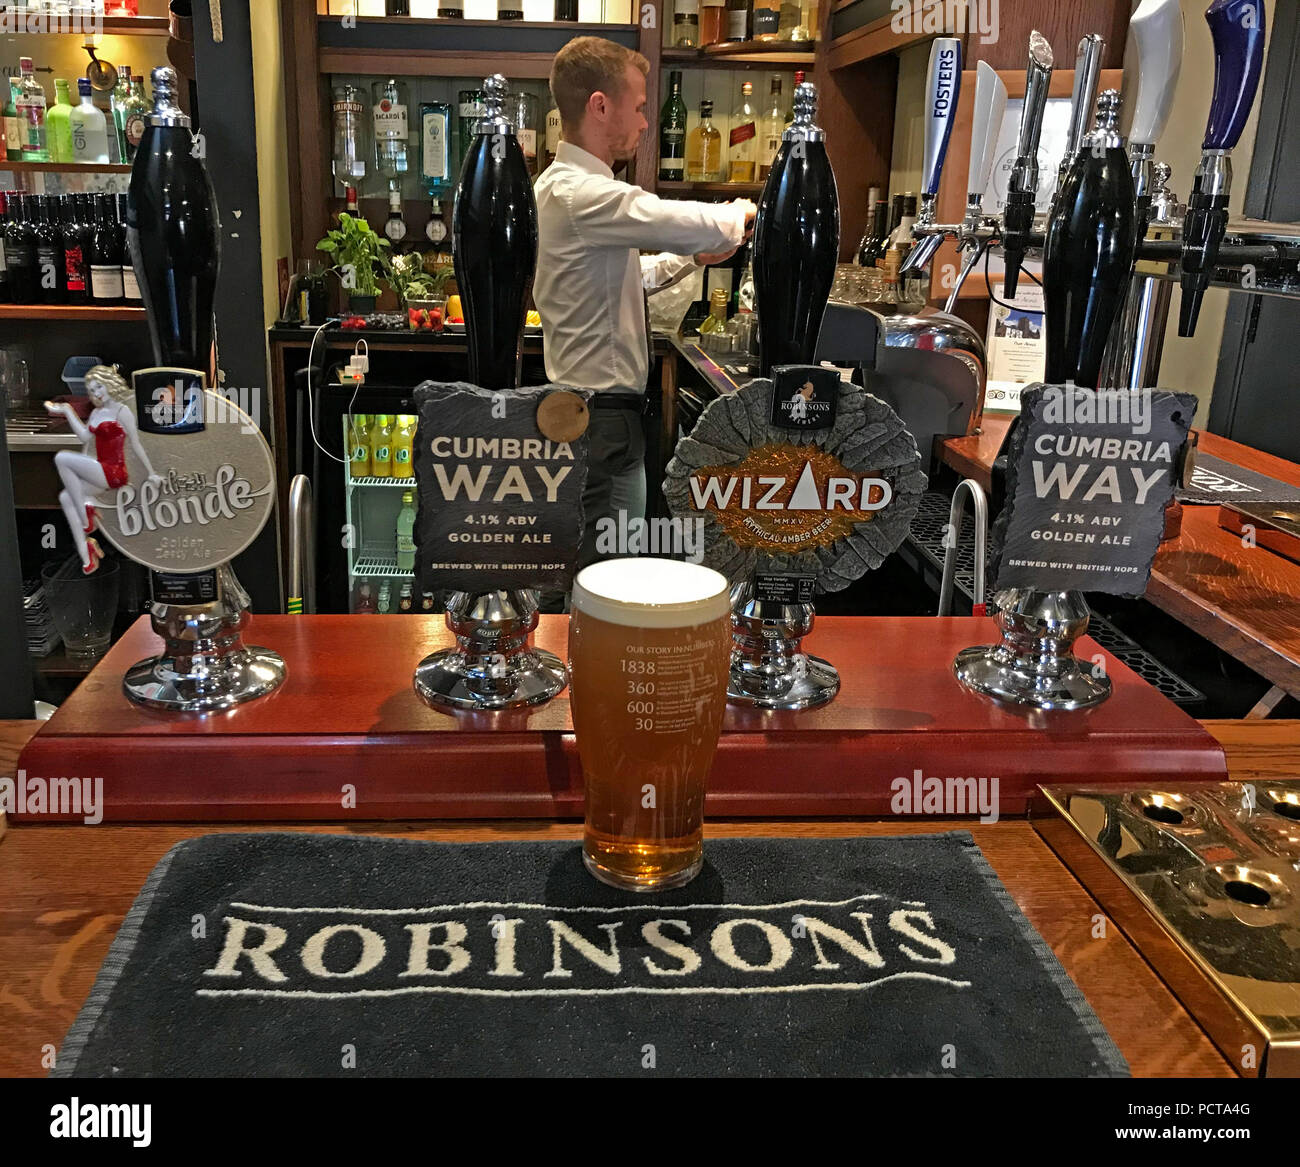 GoTonySmith,@HotpixUK,ale,beer,beers,brewery,brewers,pump,pumps,hand pull,Trouper,South Warrington,England,Stockport,Stockport Brewery,Stockport Brewer,Manchester,Brewery,realale,real ale,real ales,village,bar,towel,beer towel,on a bar,Parr Arms,Grappenhall,Warrington,Cheshire,North West England,UK,Frederic,Robinson,hand pull pump,Trooper,Robinsons ales on a bar,landlord,barman,Unicorn